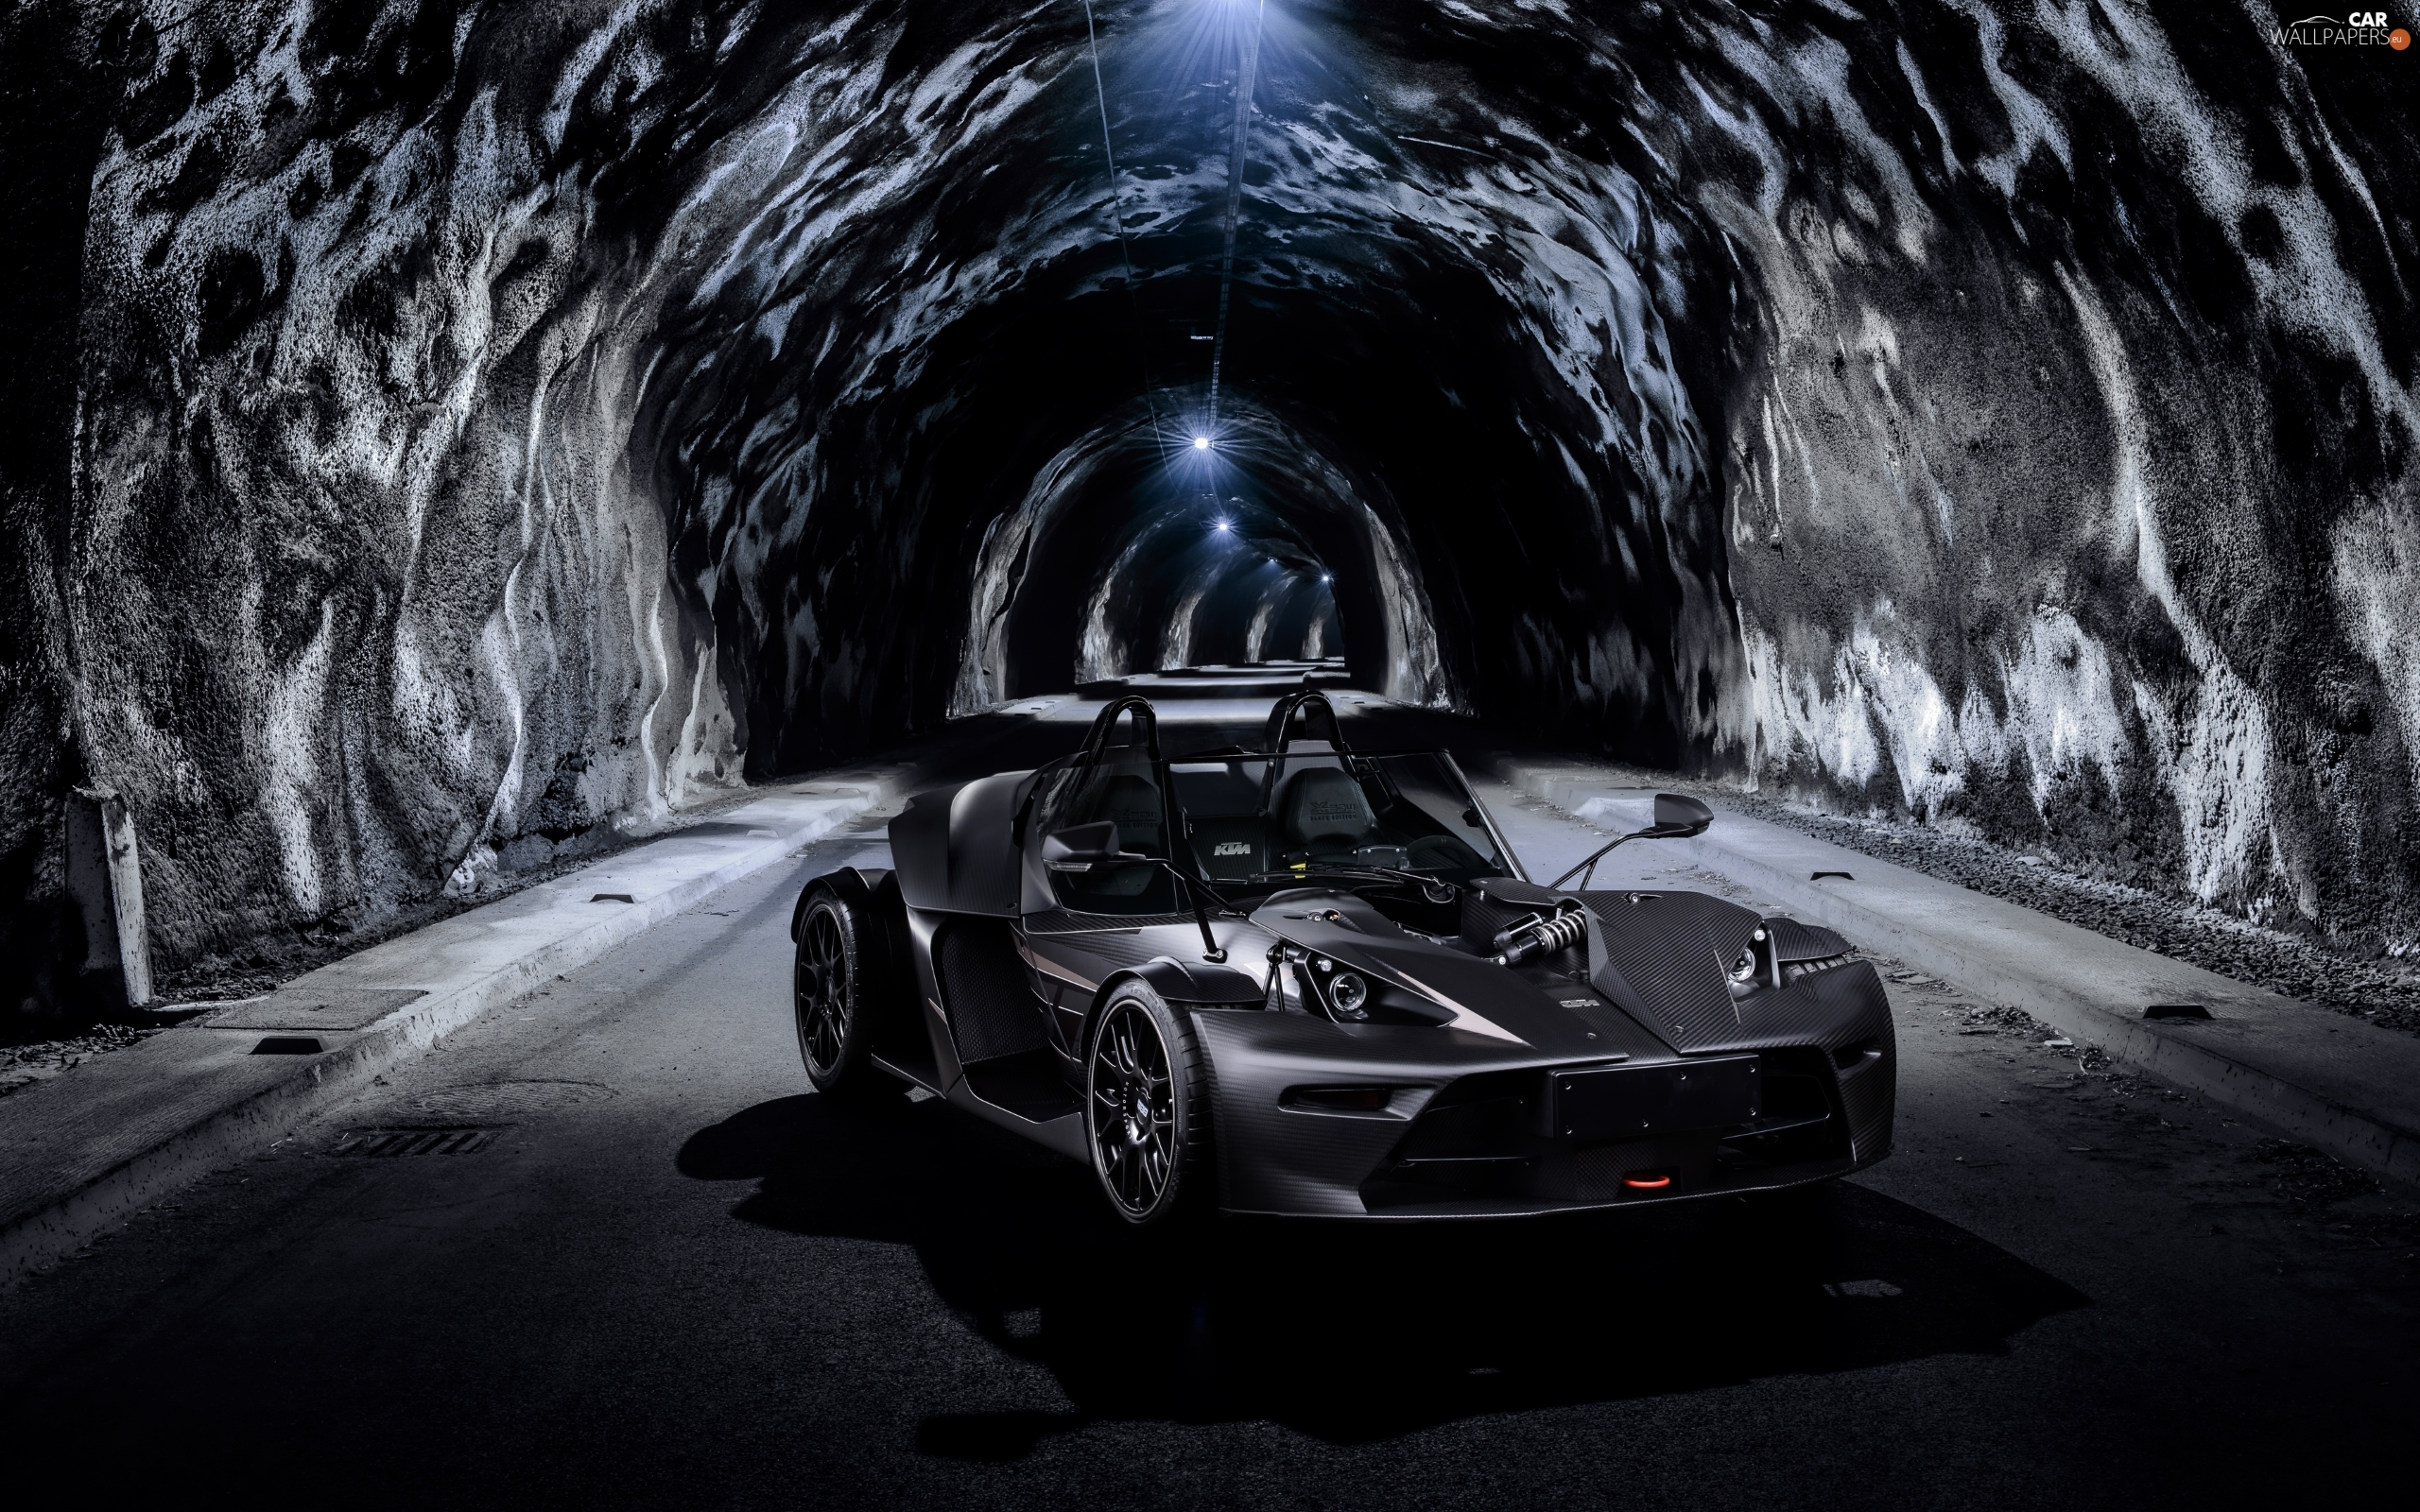 tunnel, Black, KTM X-Bow